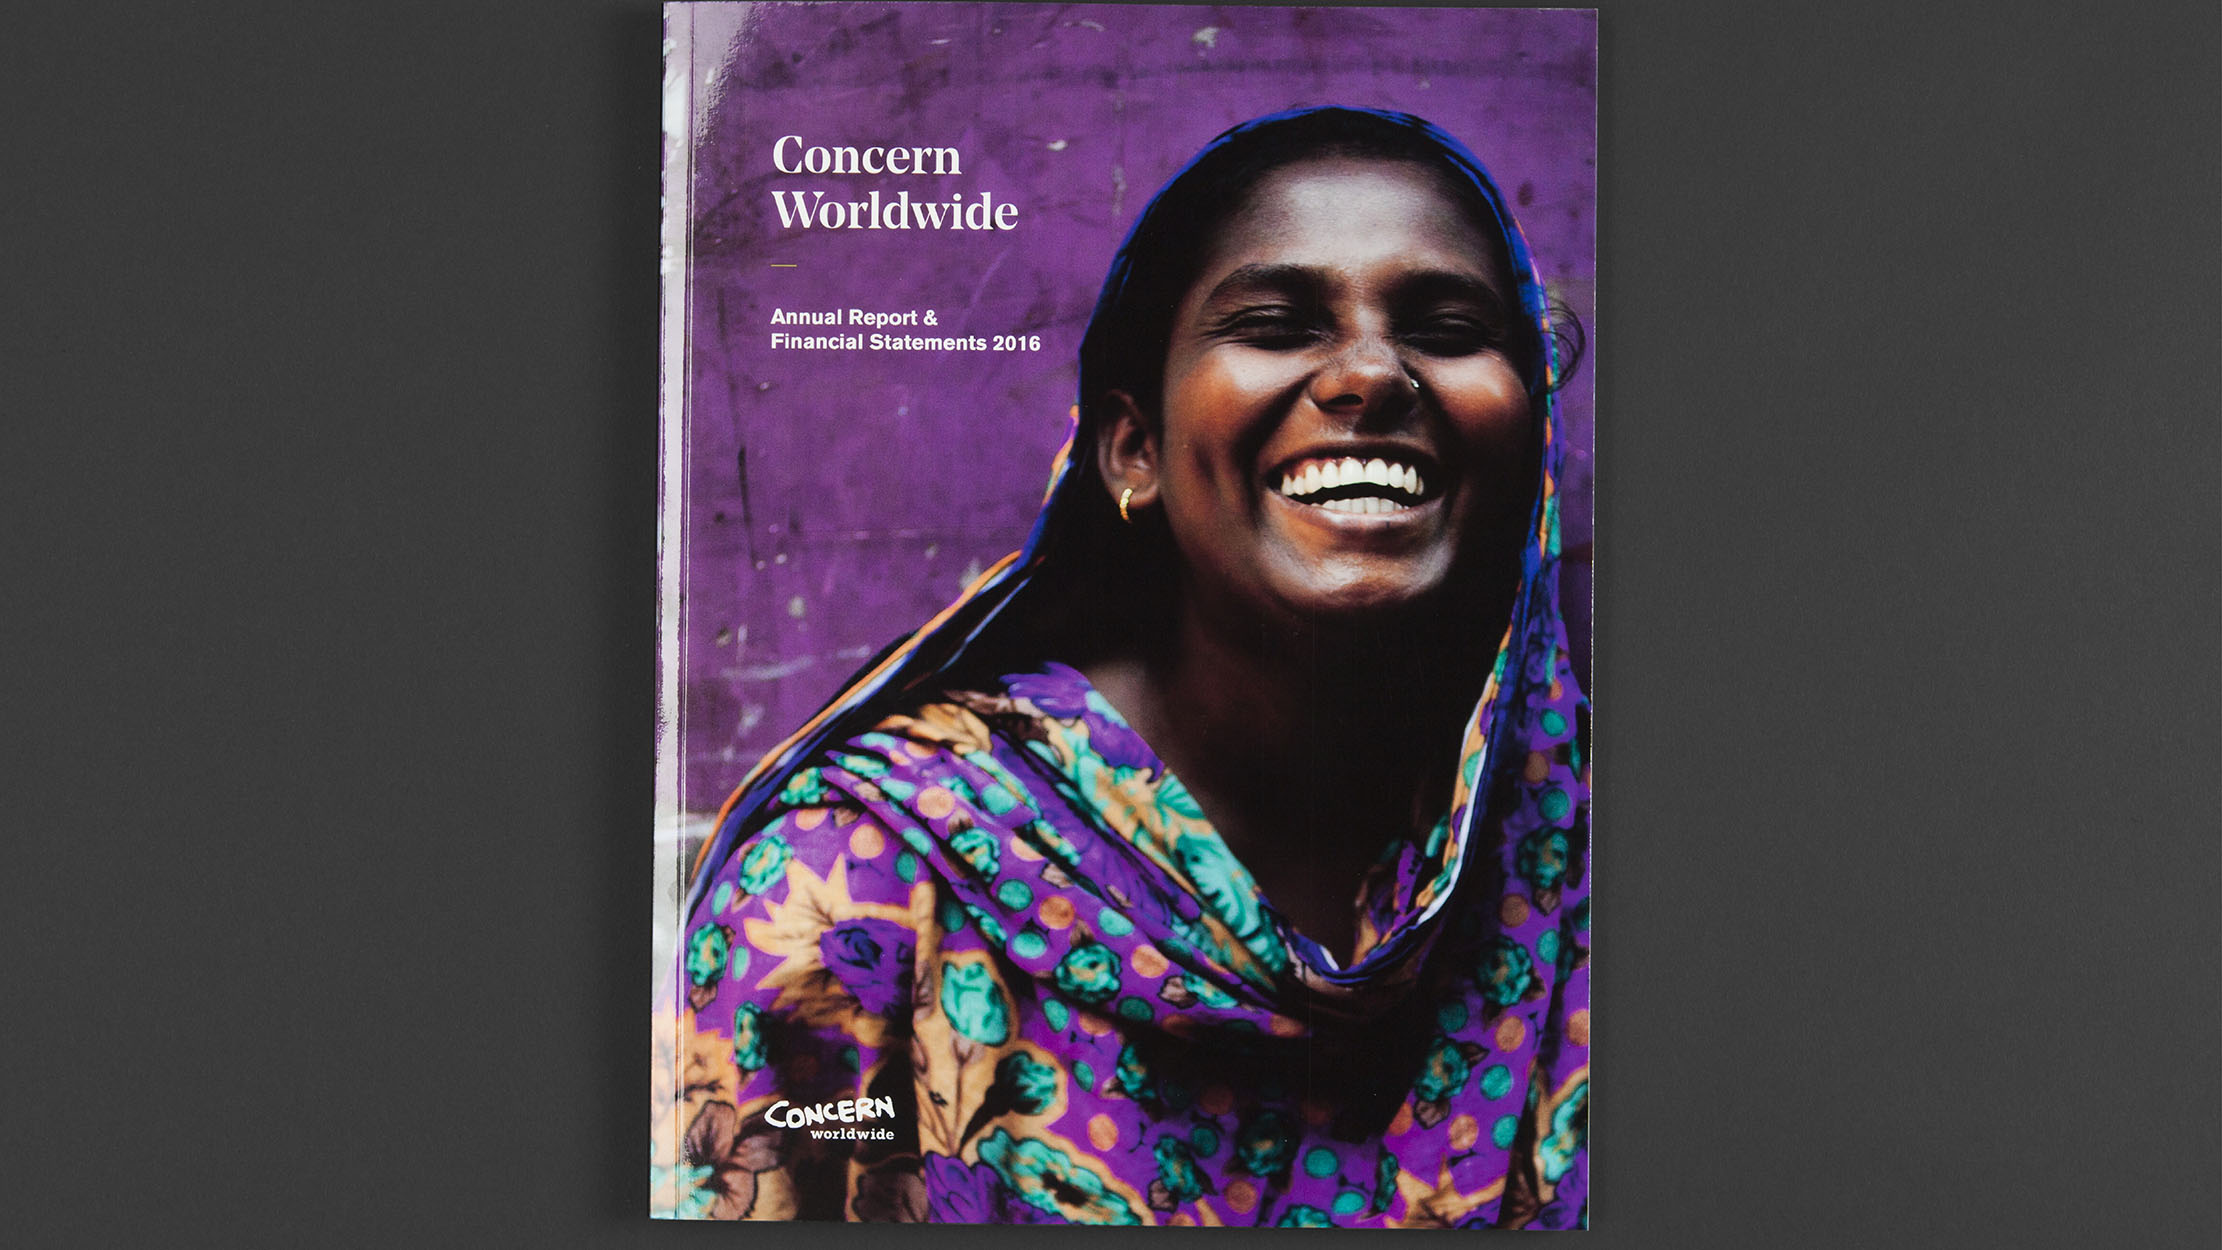 Concern Worldwide Annual Report 2016 -3